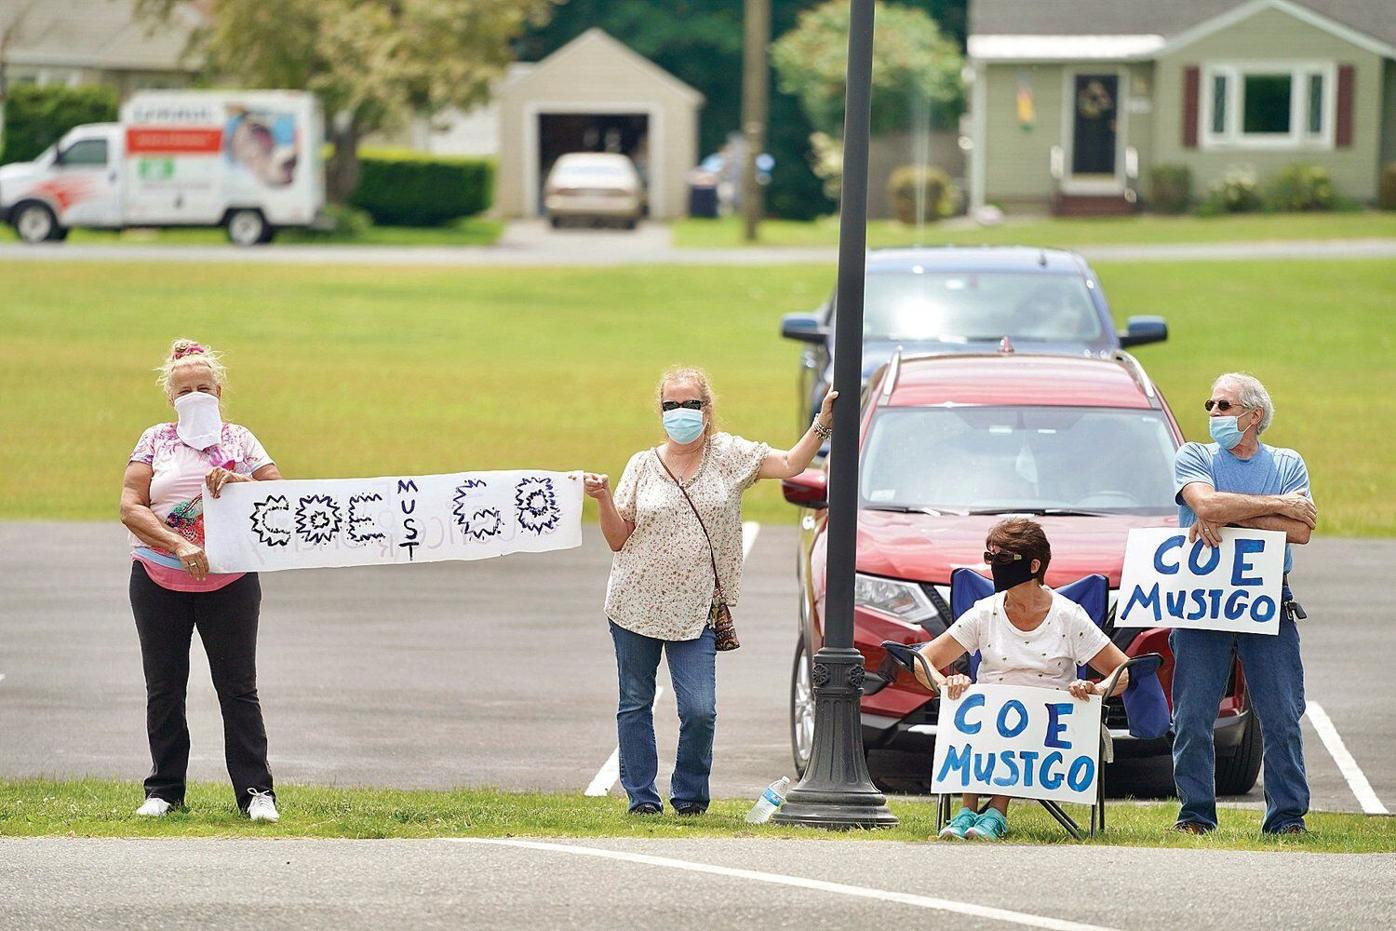 Protesters outside hearing call for Dalton chief's firing, next hearing June 18